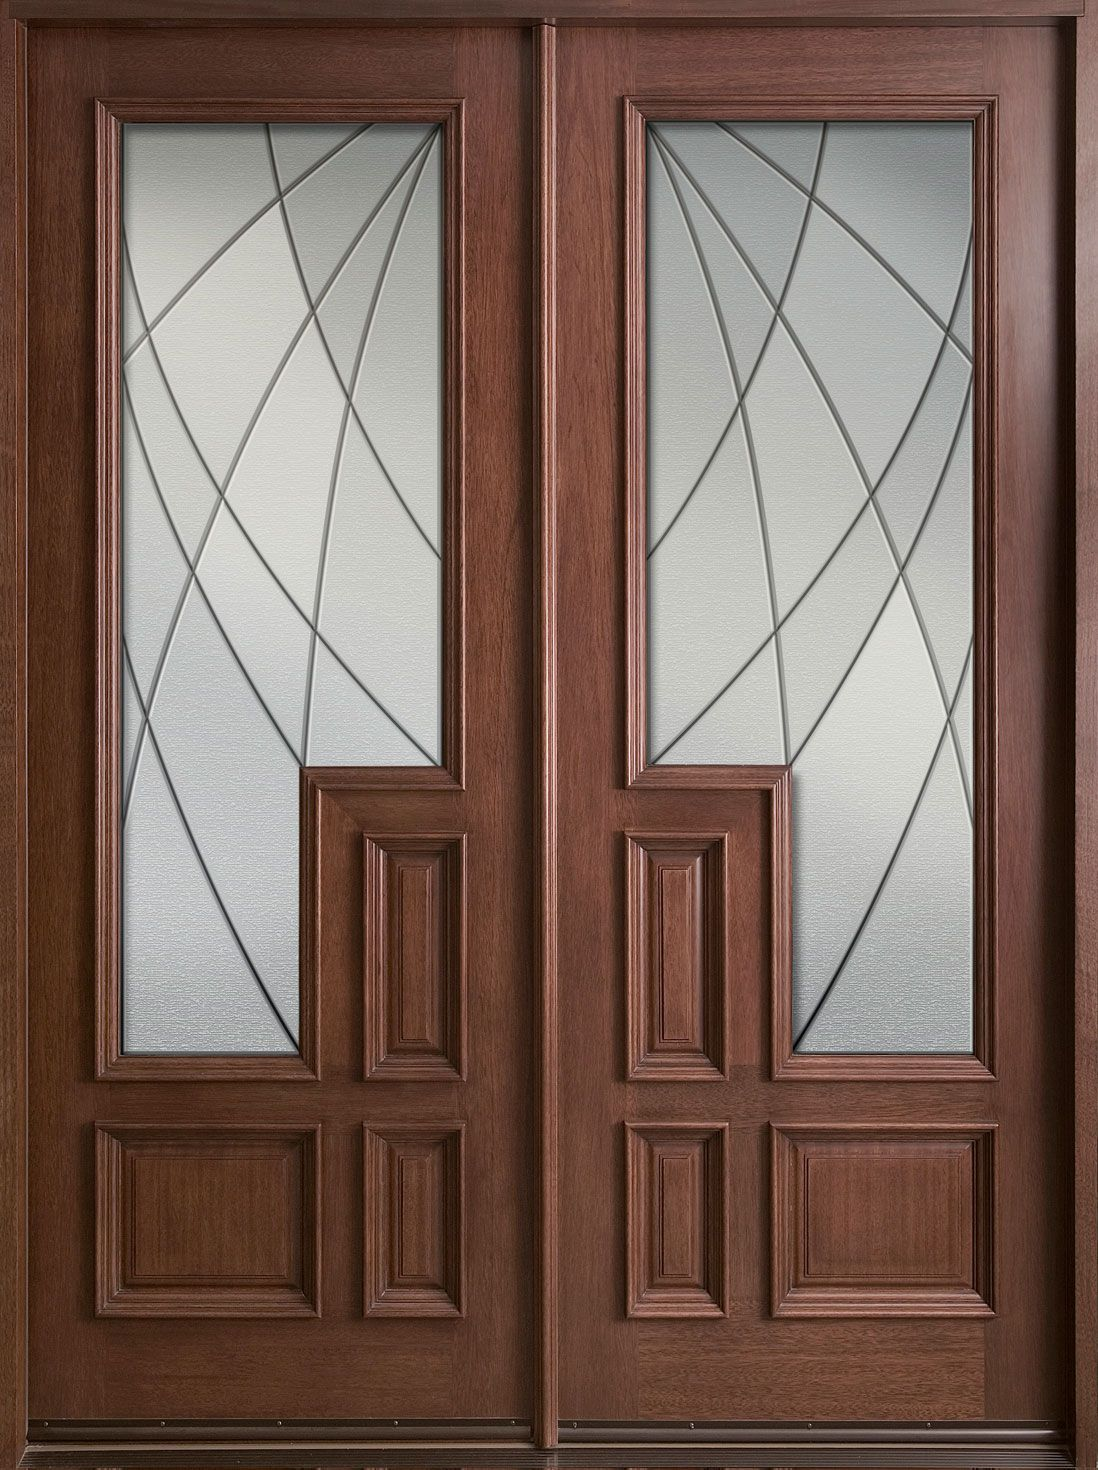 Inspiring double fiberglass entry door as furniture for for Houses with double front doors